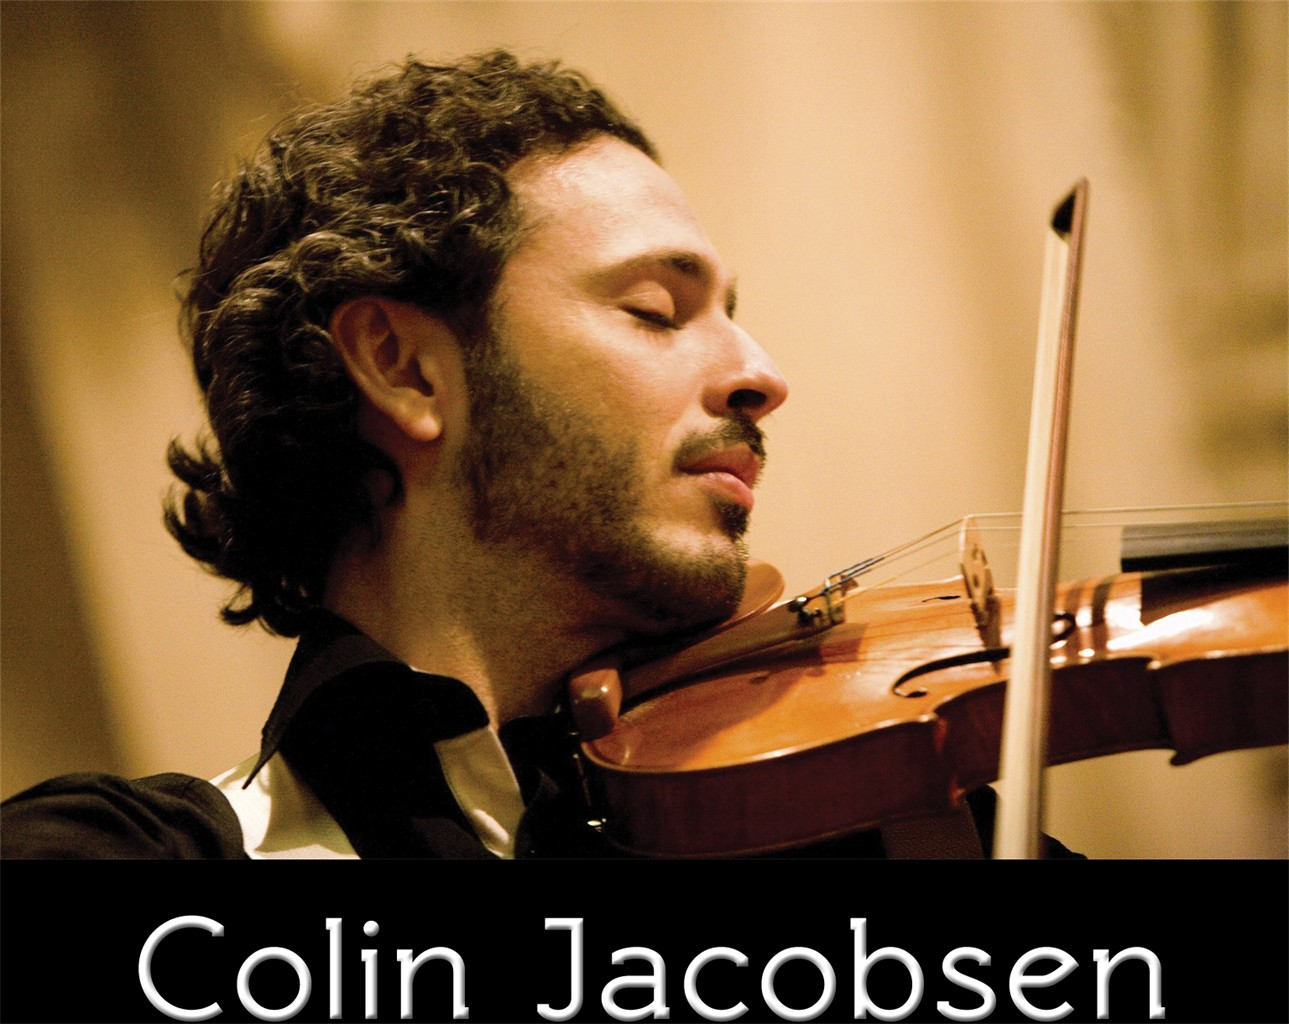 Colin Jacobsen